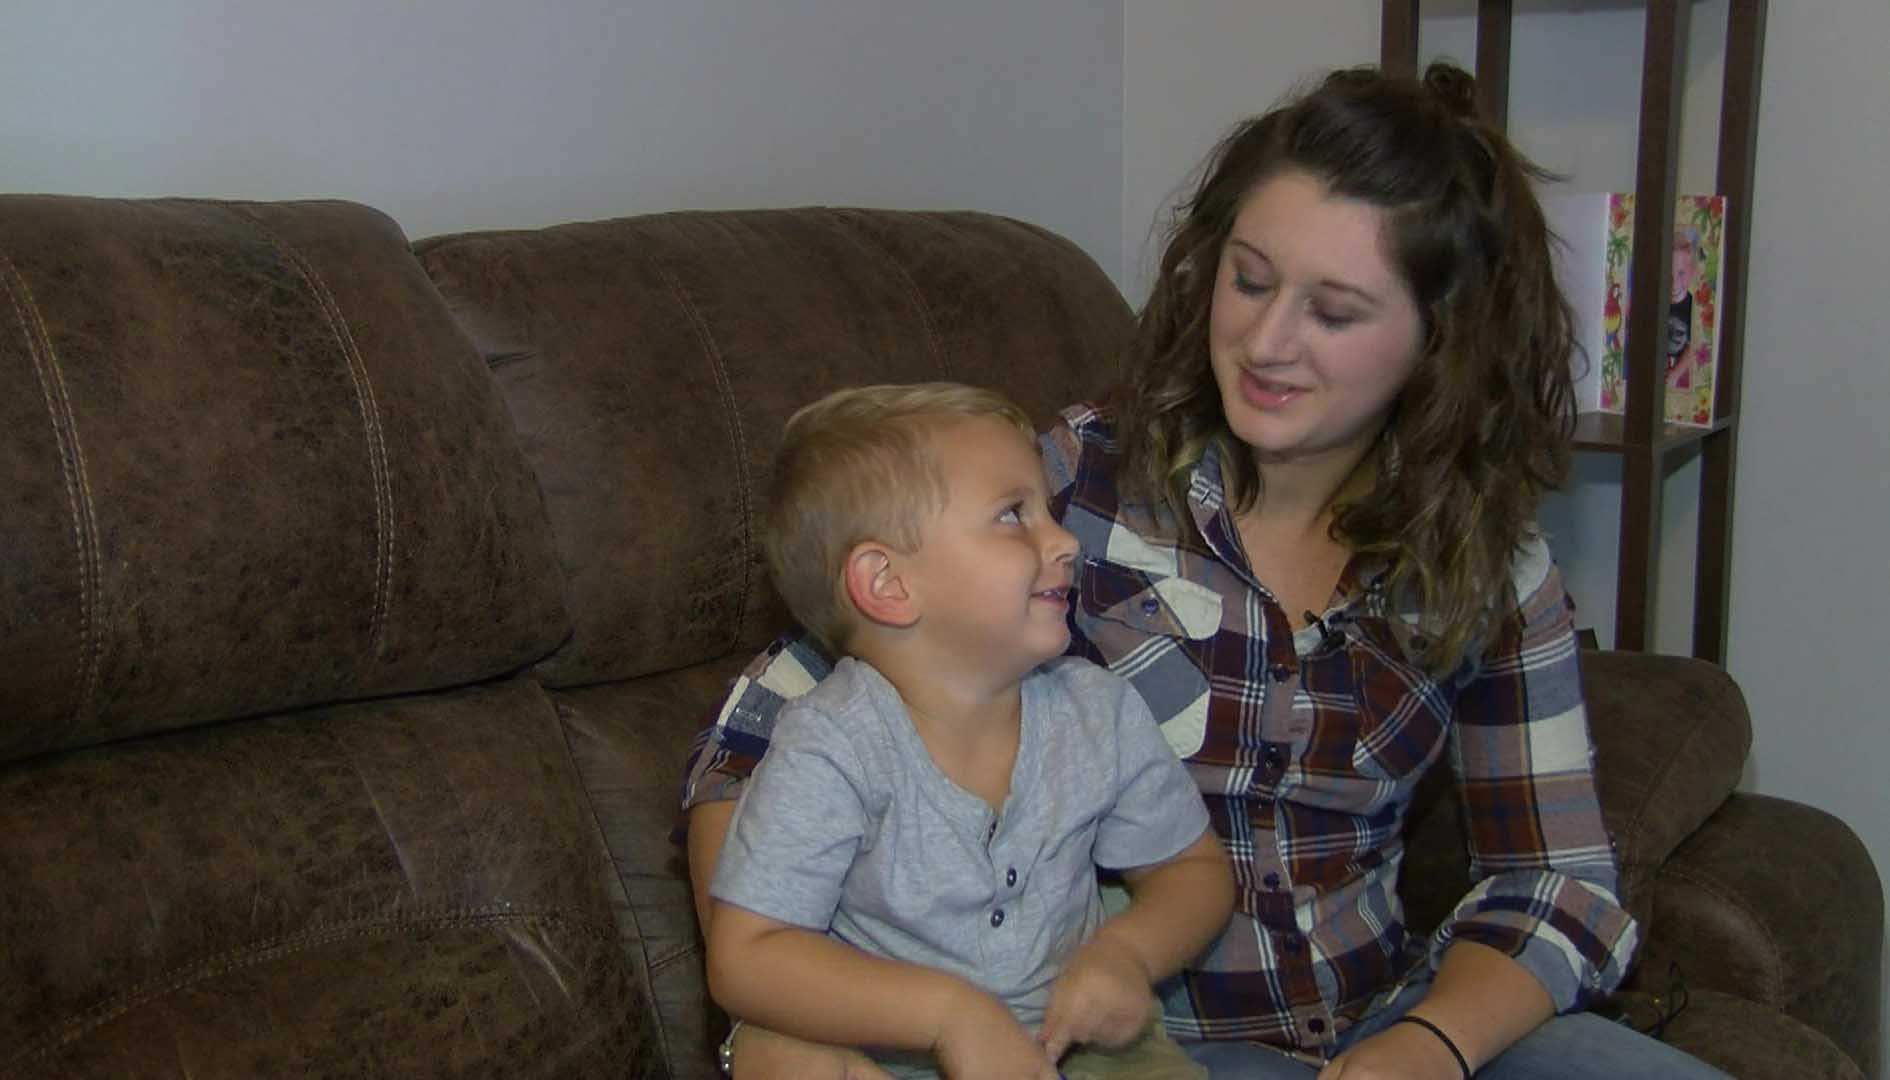 It was up to Ashton Cupples' 3-year-old son to figure out a way to save her. (Source: WMC)